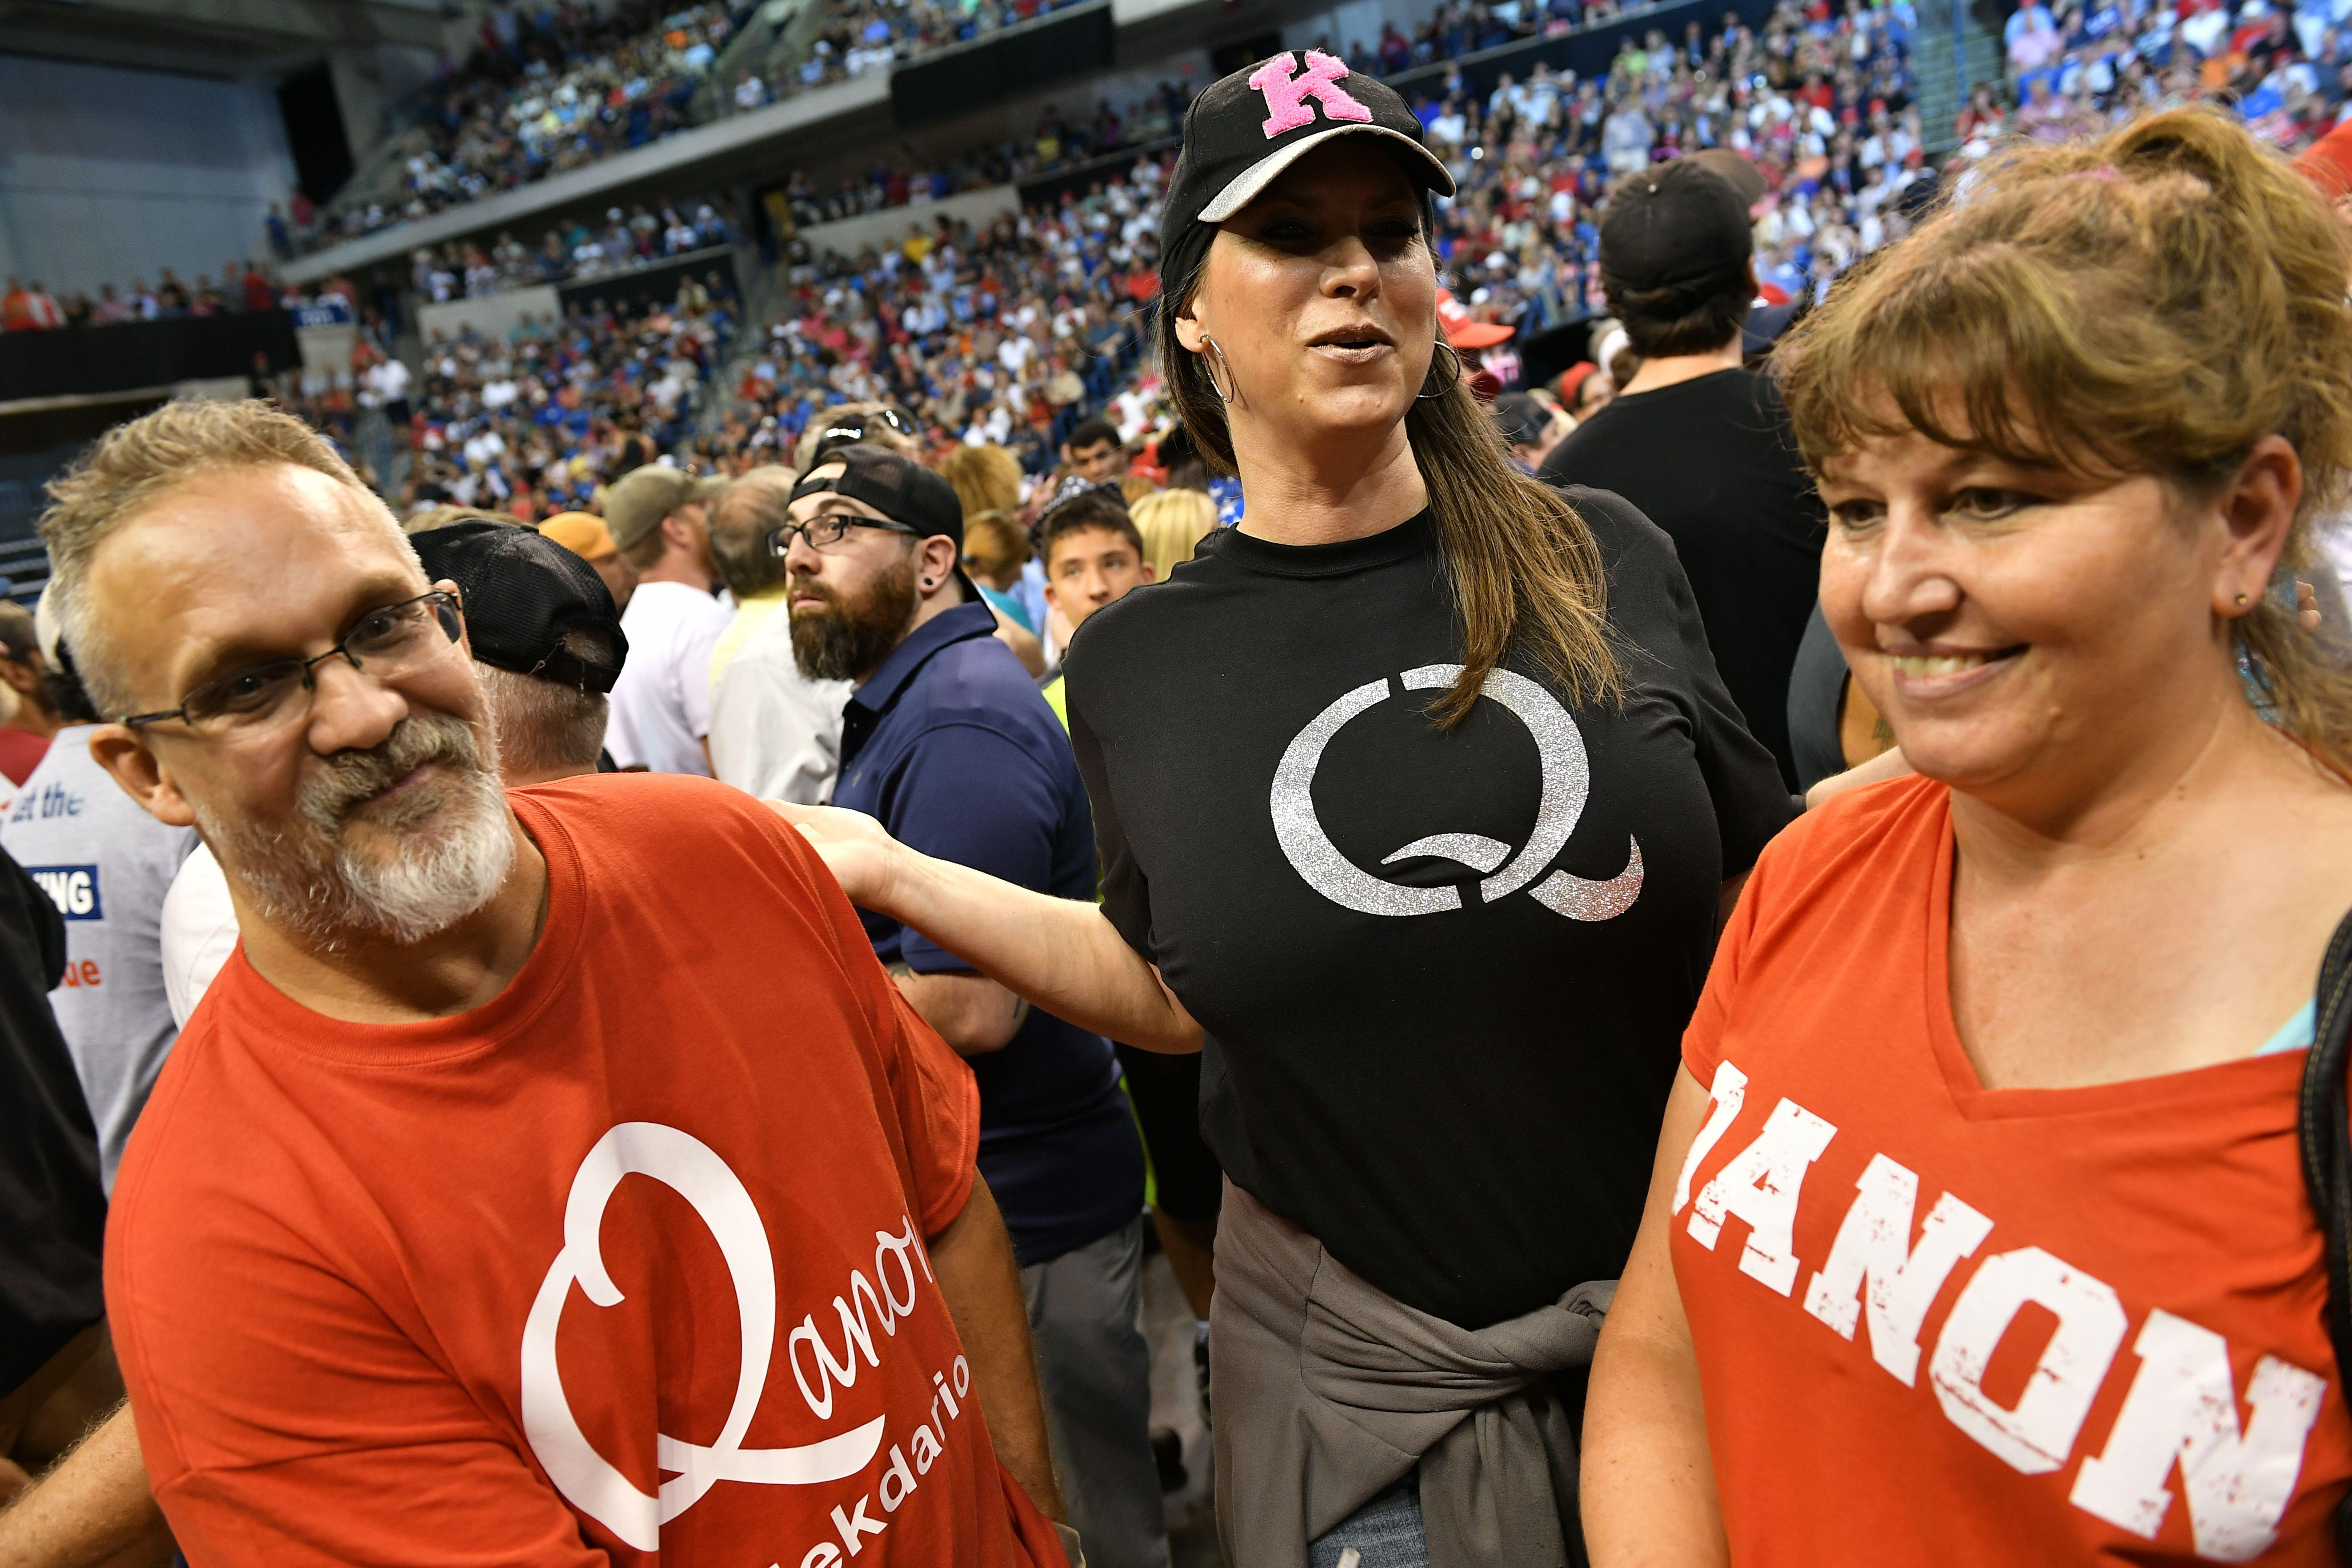 Members of QAnon await the arrival of President Donald Trump for a political rally in Wilkes-Barre, Pennsylvania on Aug. 2.